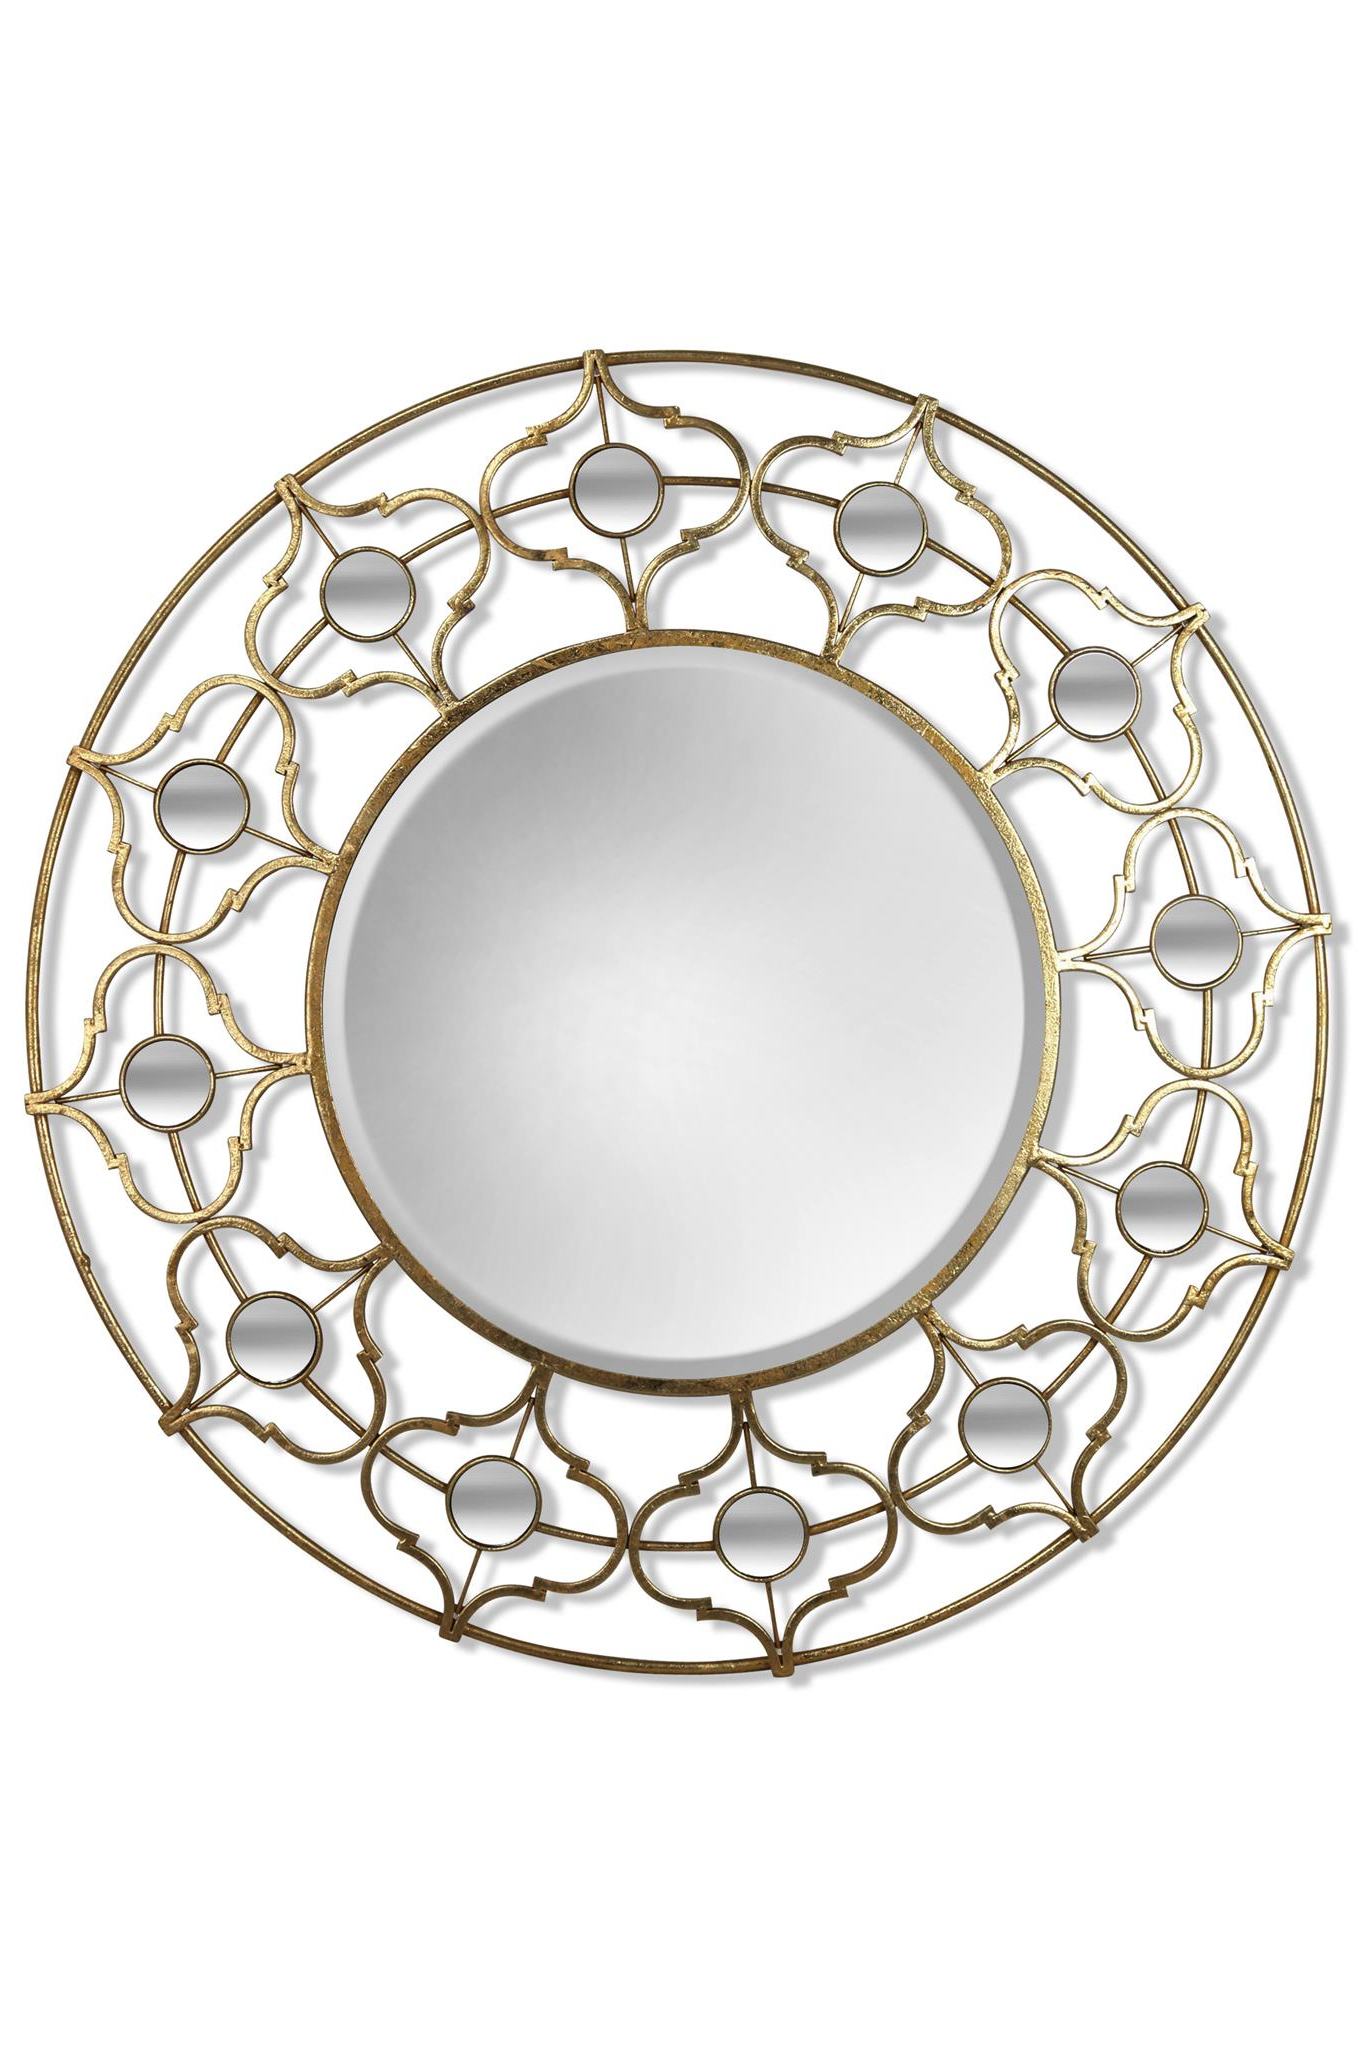 Round Metal Wall Mirror For 2020 Round Metal Wall Mirrors (View 11 of 20)